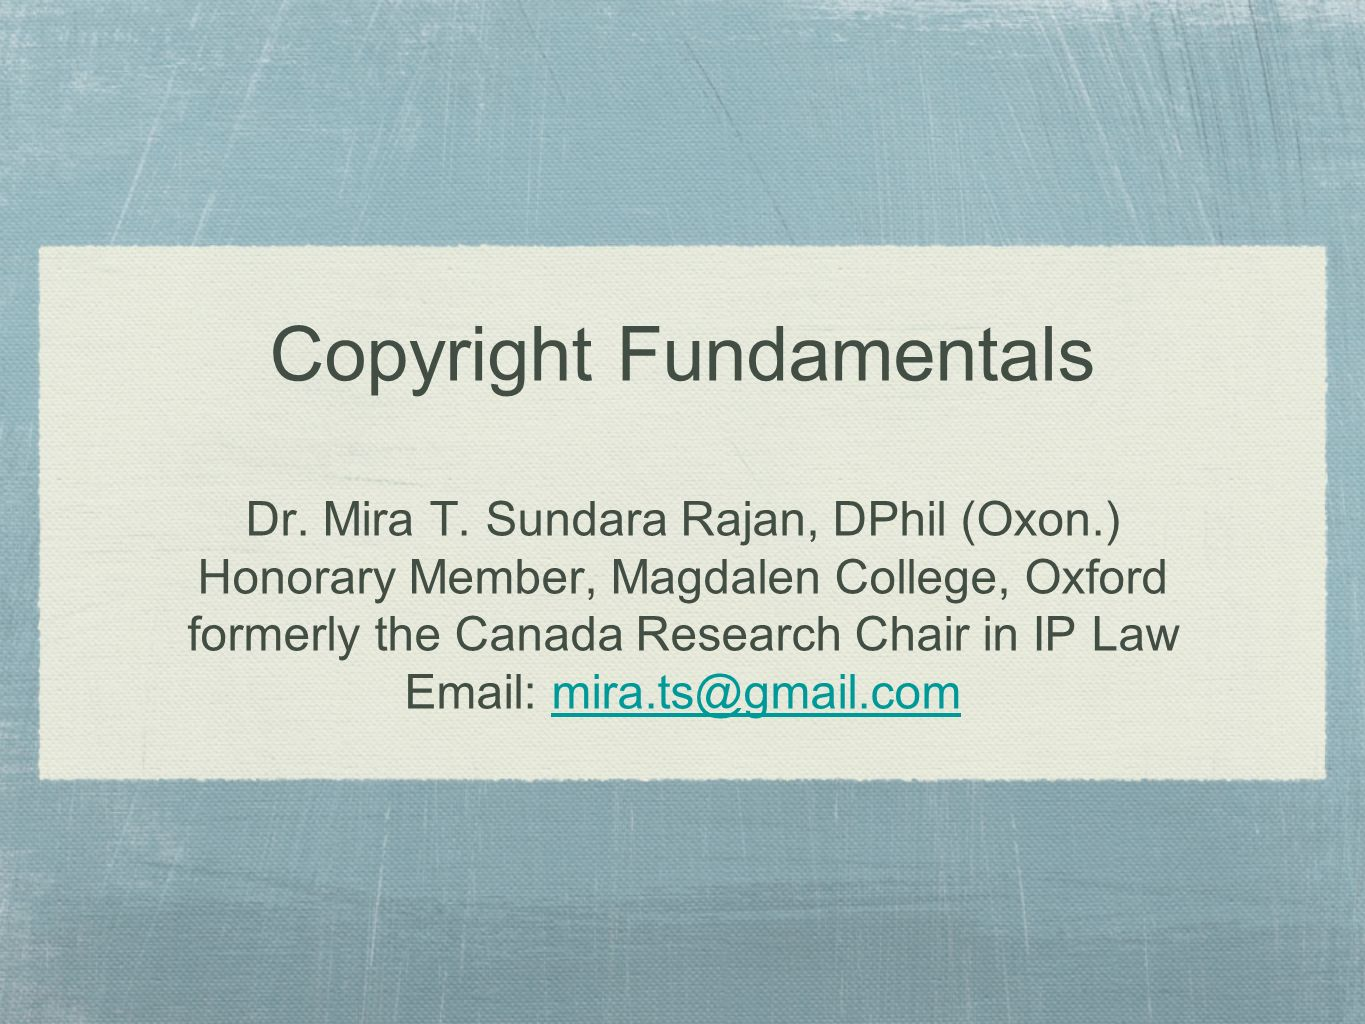 Copyright Fundamentals Dr. Mira T. Sundara Rajan, DPhil (Oxon.) Honorary Member, Magdalen College, Oxford formerly the Canada Research Chair in IP Law